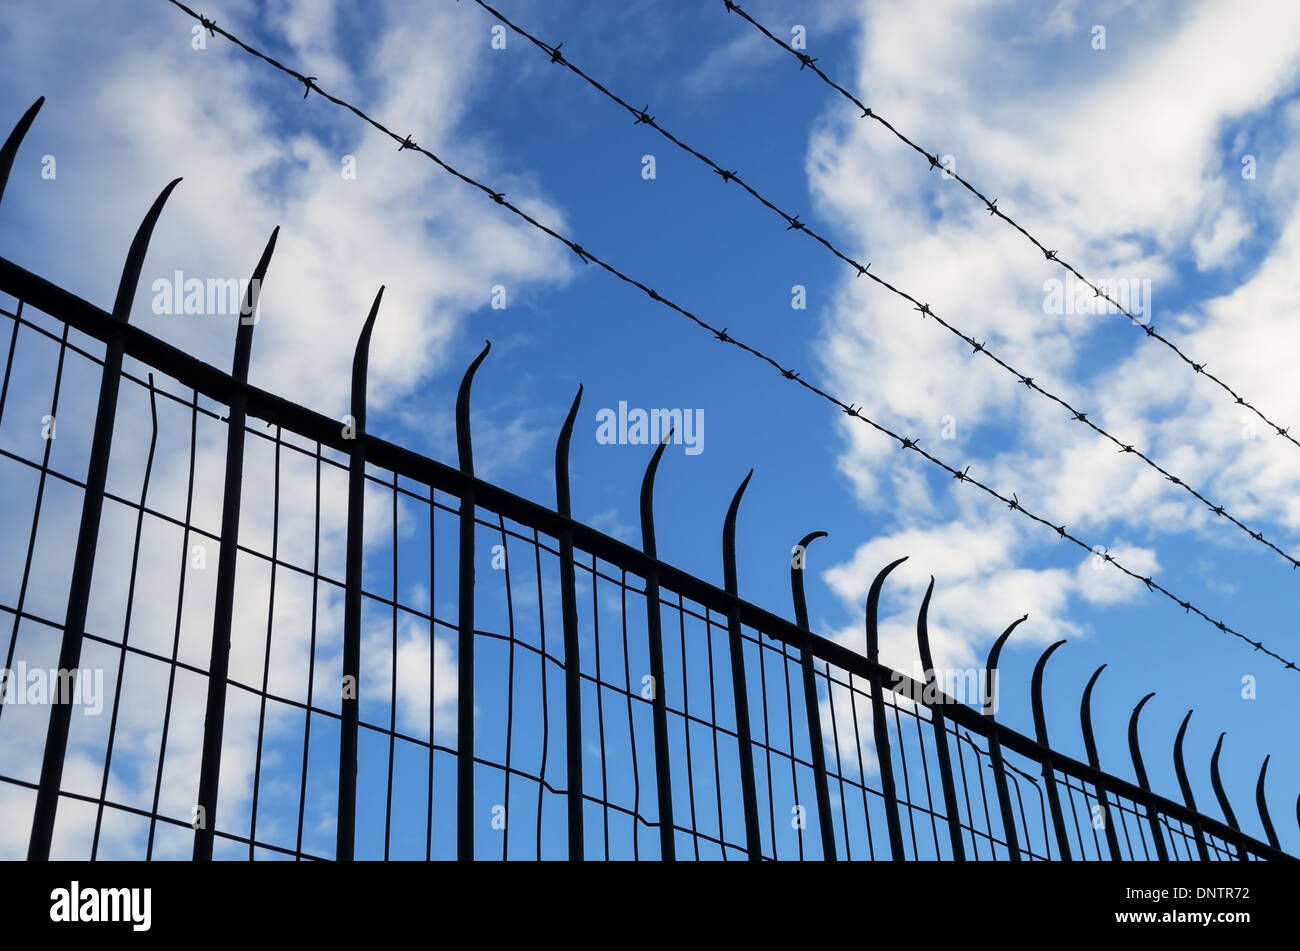 spiked and barb wire mesh fence silhouette - Stock Image